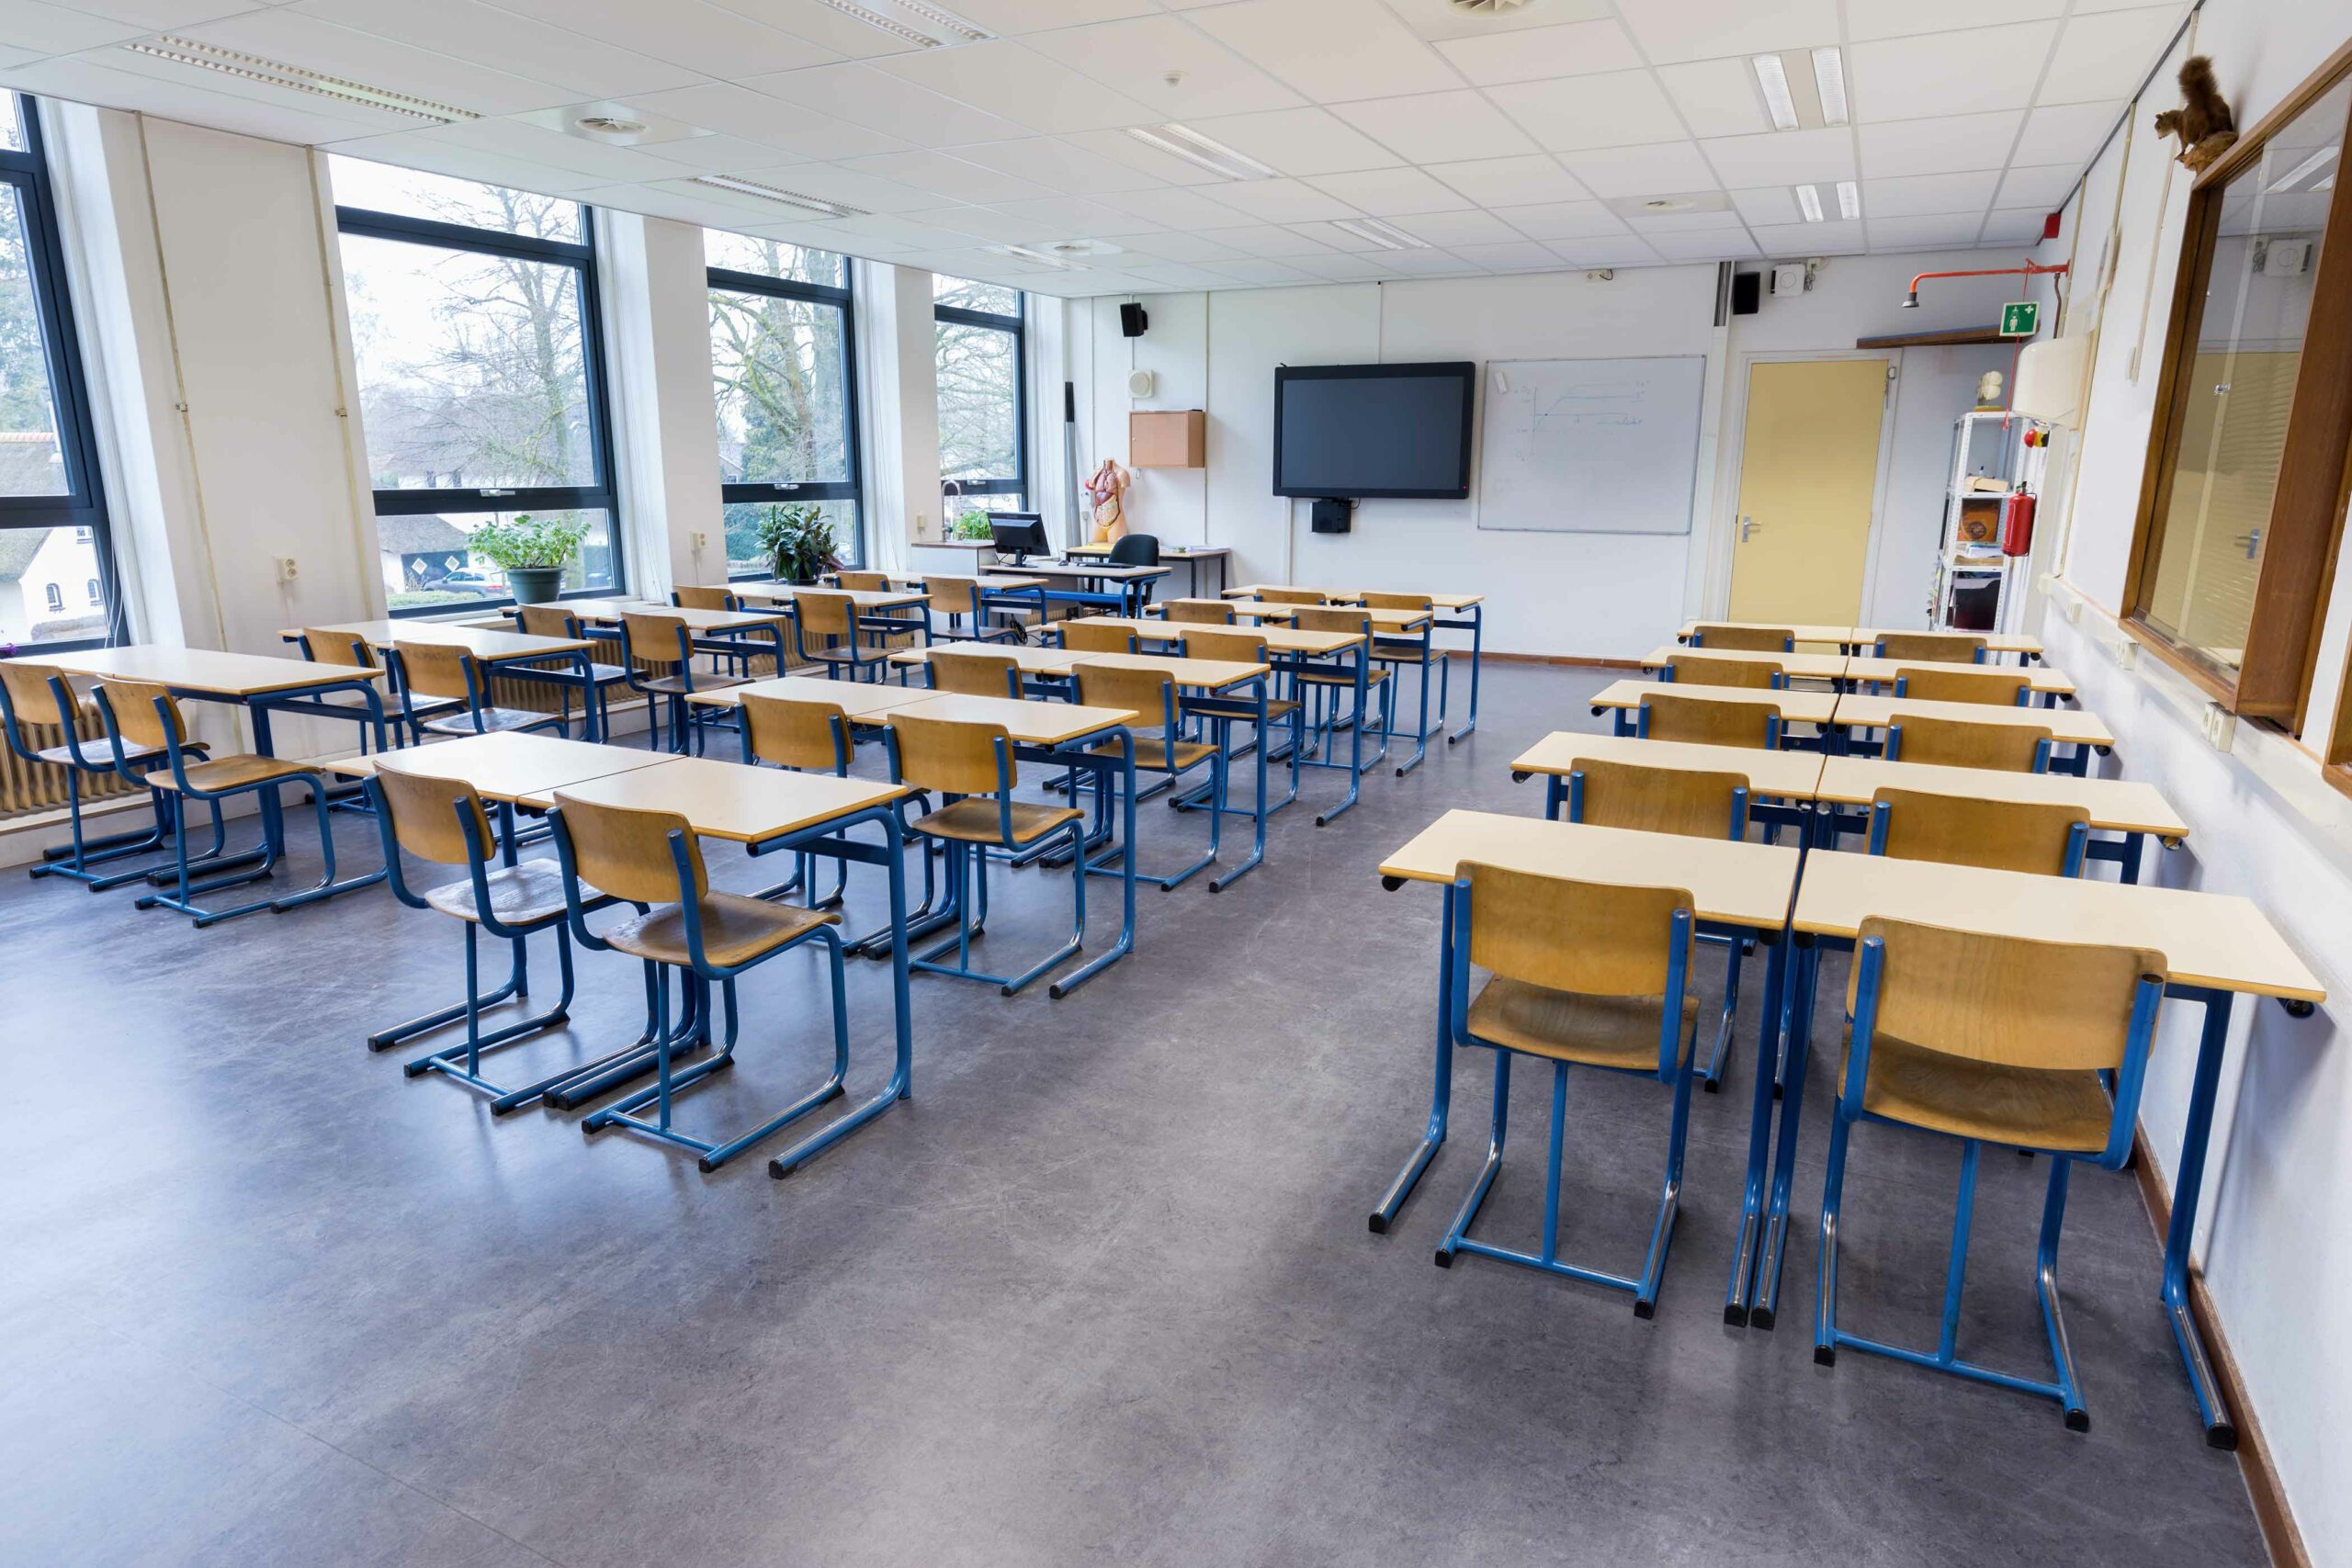 Heating System Failure Avoided at West London High School